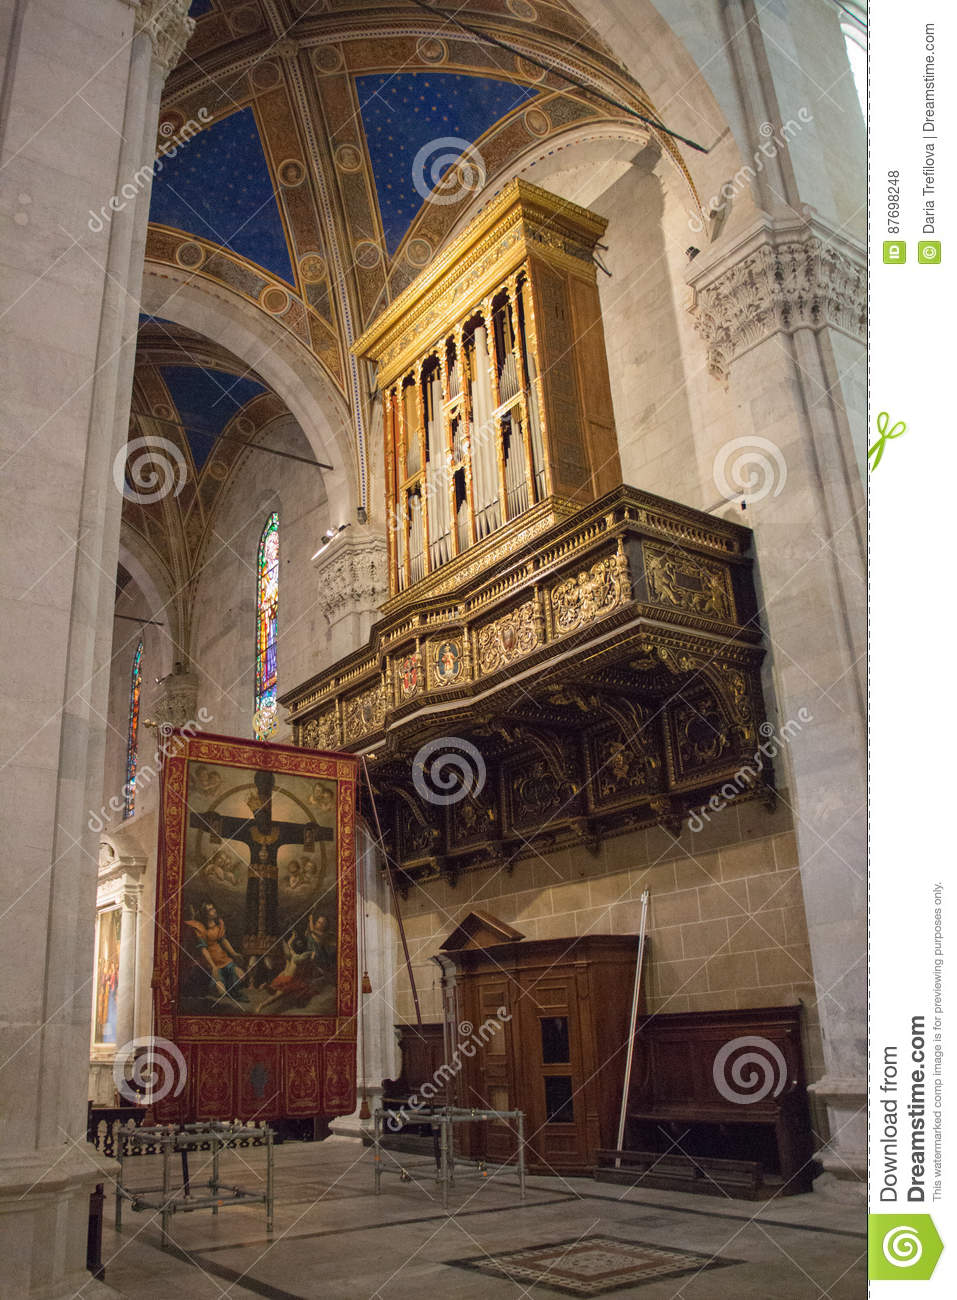 Interior Organ Of Lucca Cathedral Cattedrale Di San Martino Tuscany Italy Editorial Stock Photo Image Of Medieval Fragment 87698248